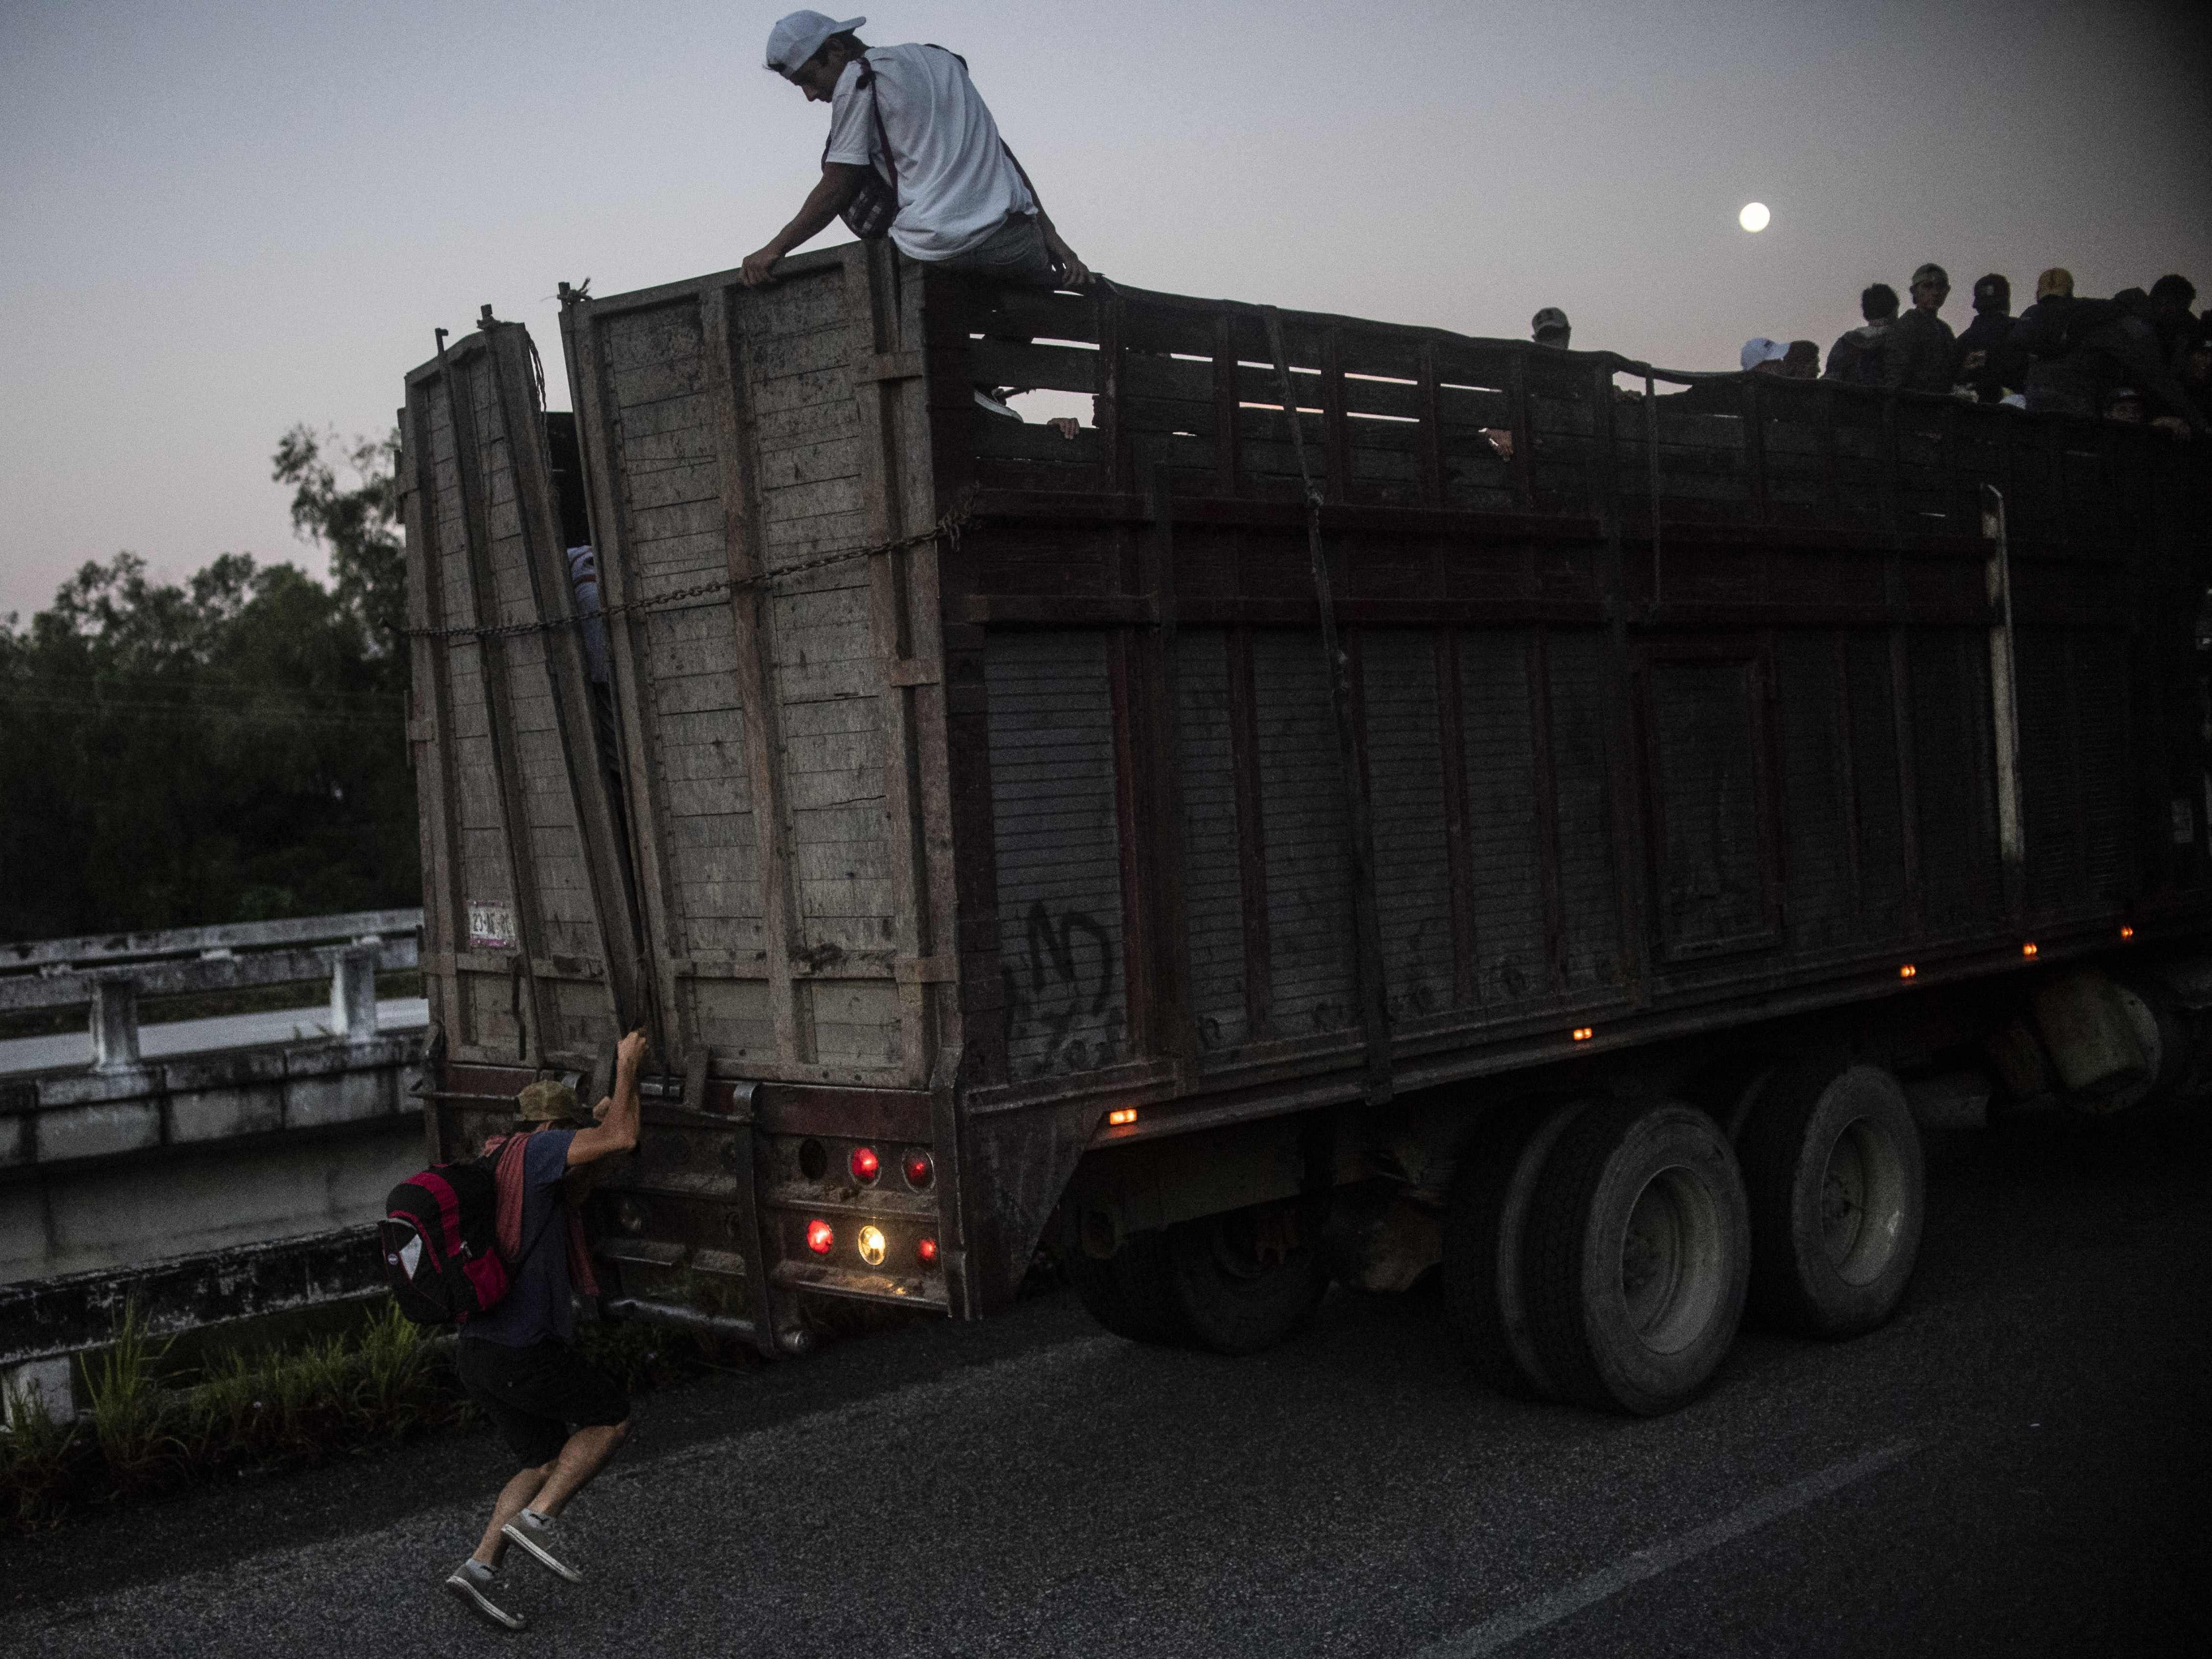 Central American migrants climb into a truck during a caravan to the U.S., near Mapastepec, Chiapas state, Mexico, Oct. 25, 2018.